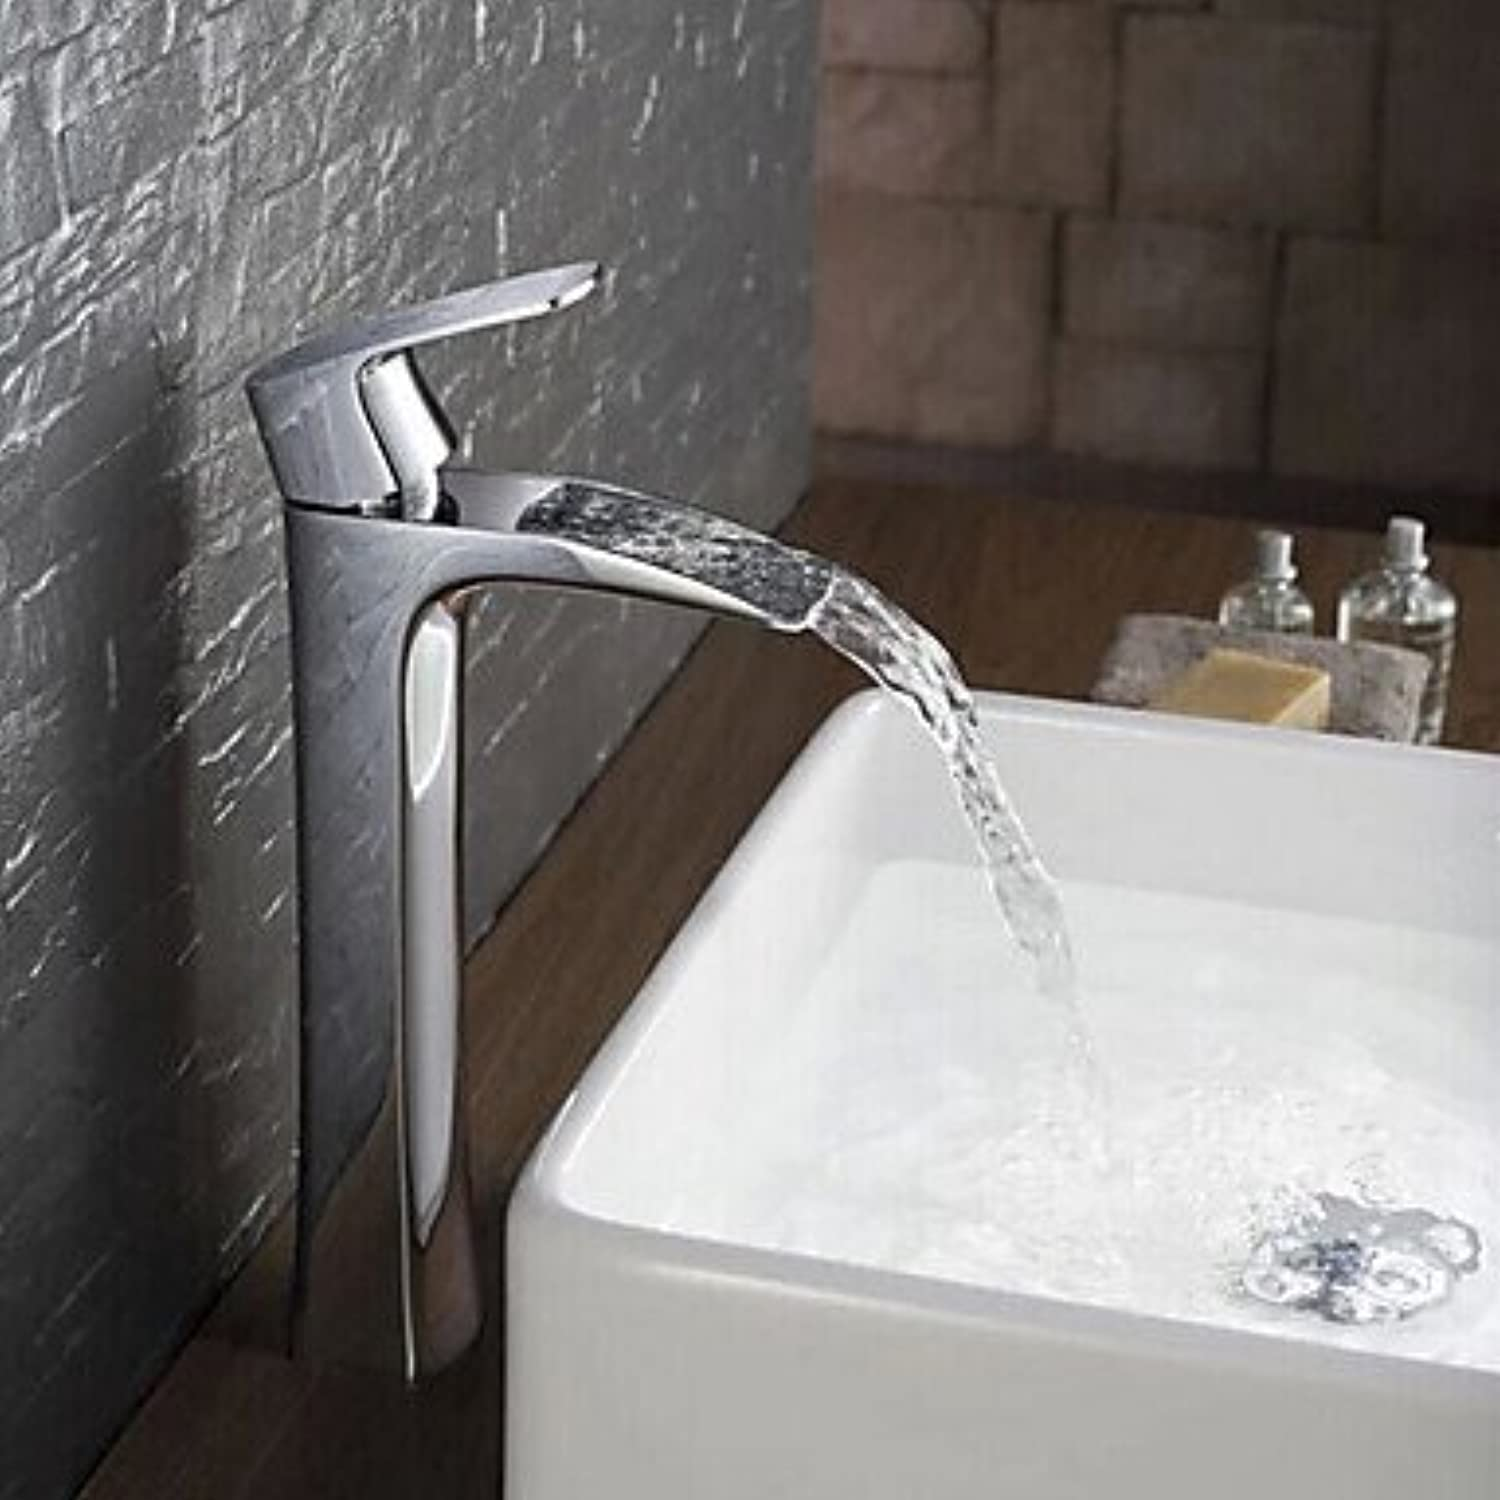 GAOLI Basin Faucets Contemporary Modern Central Position Waterfall with Ceramic alve Handed a Hole for Chrome, Sink Faucet, hot Cold